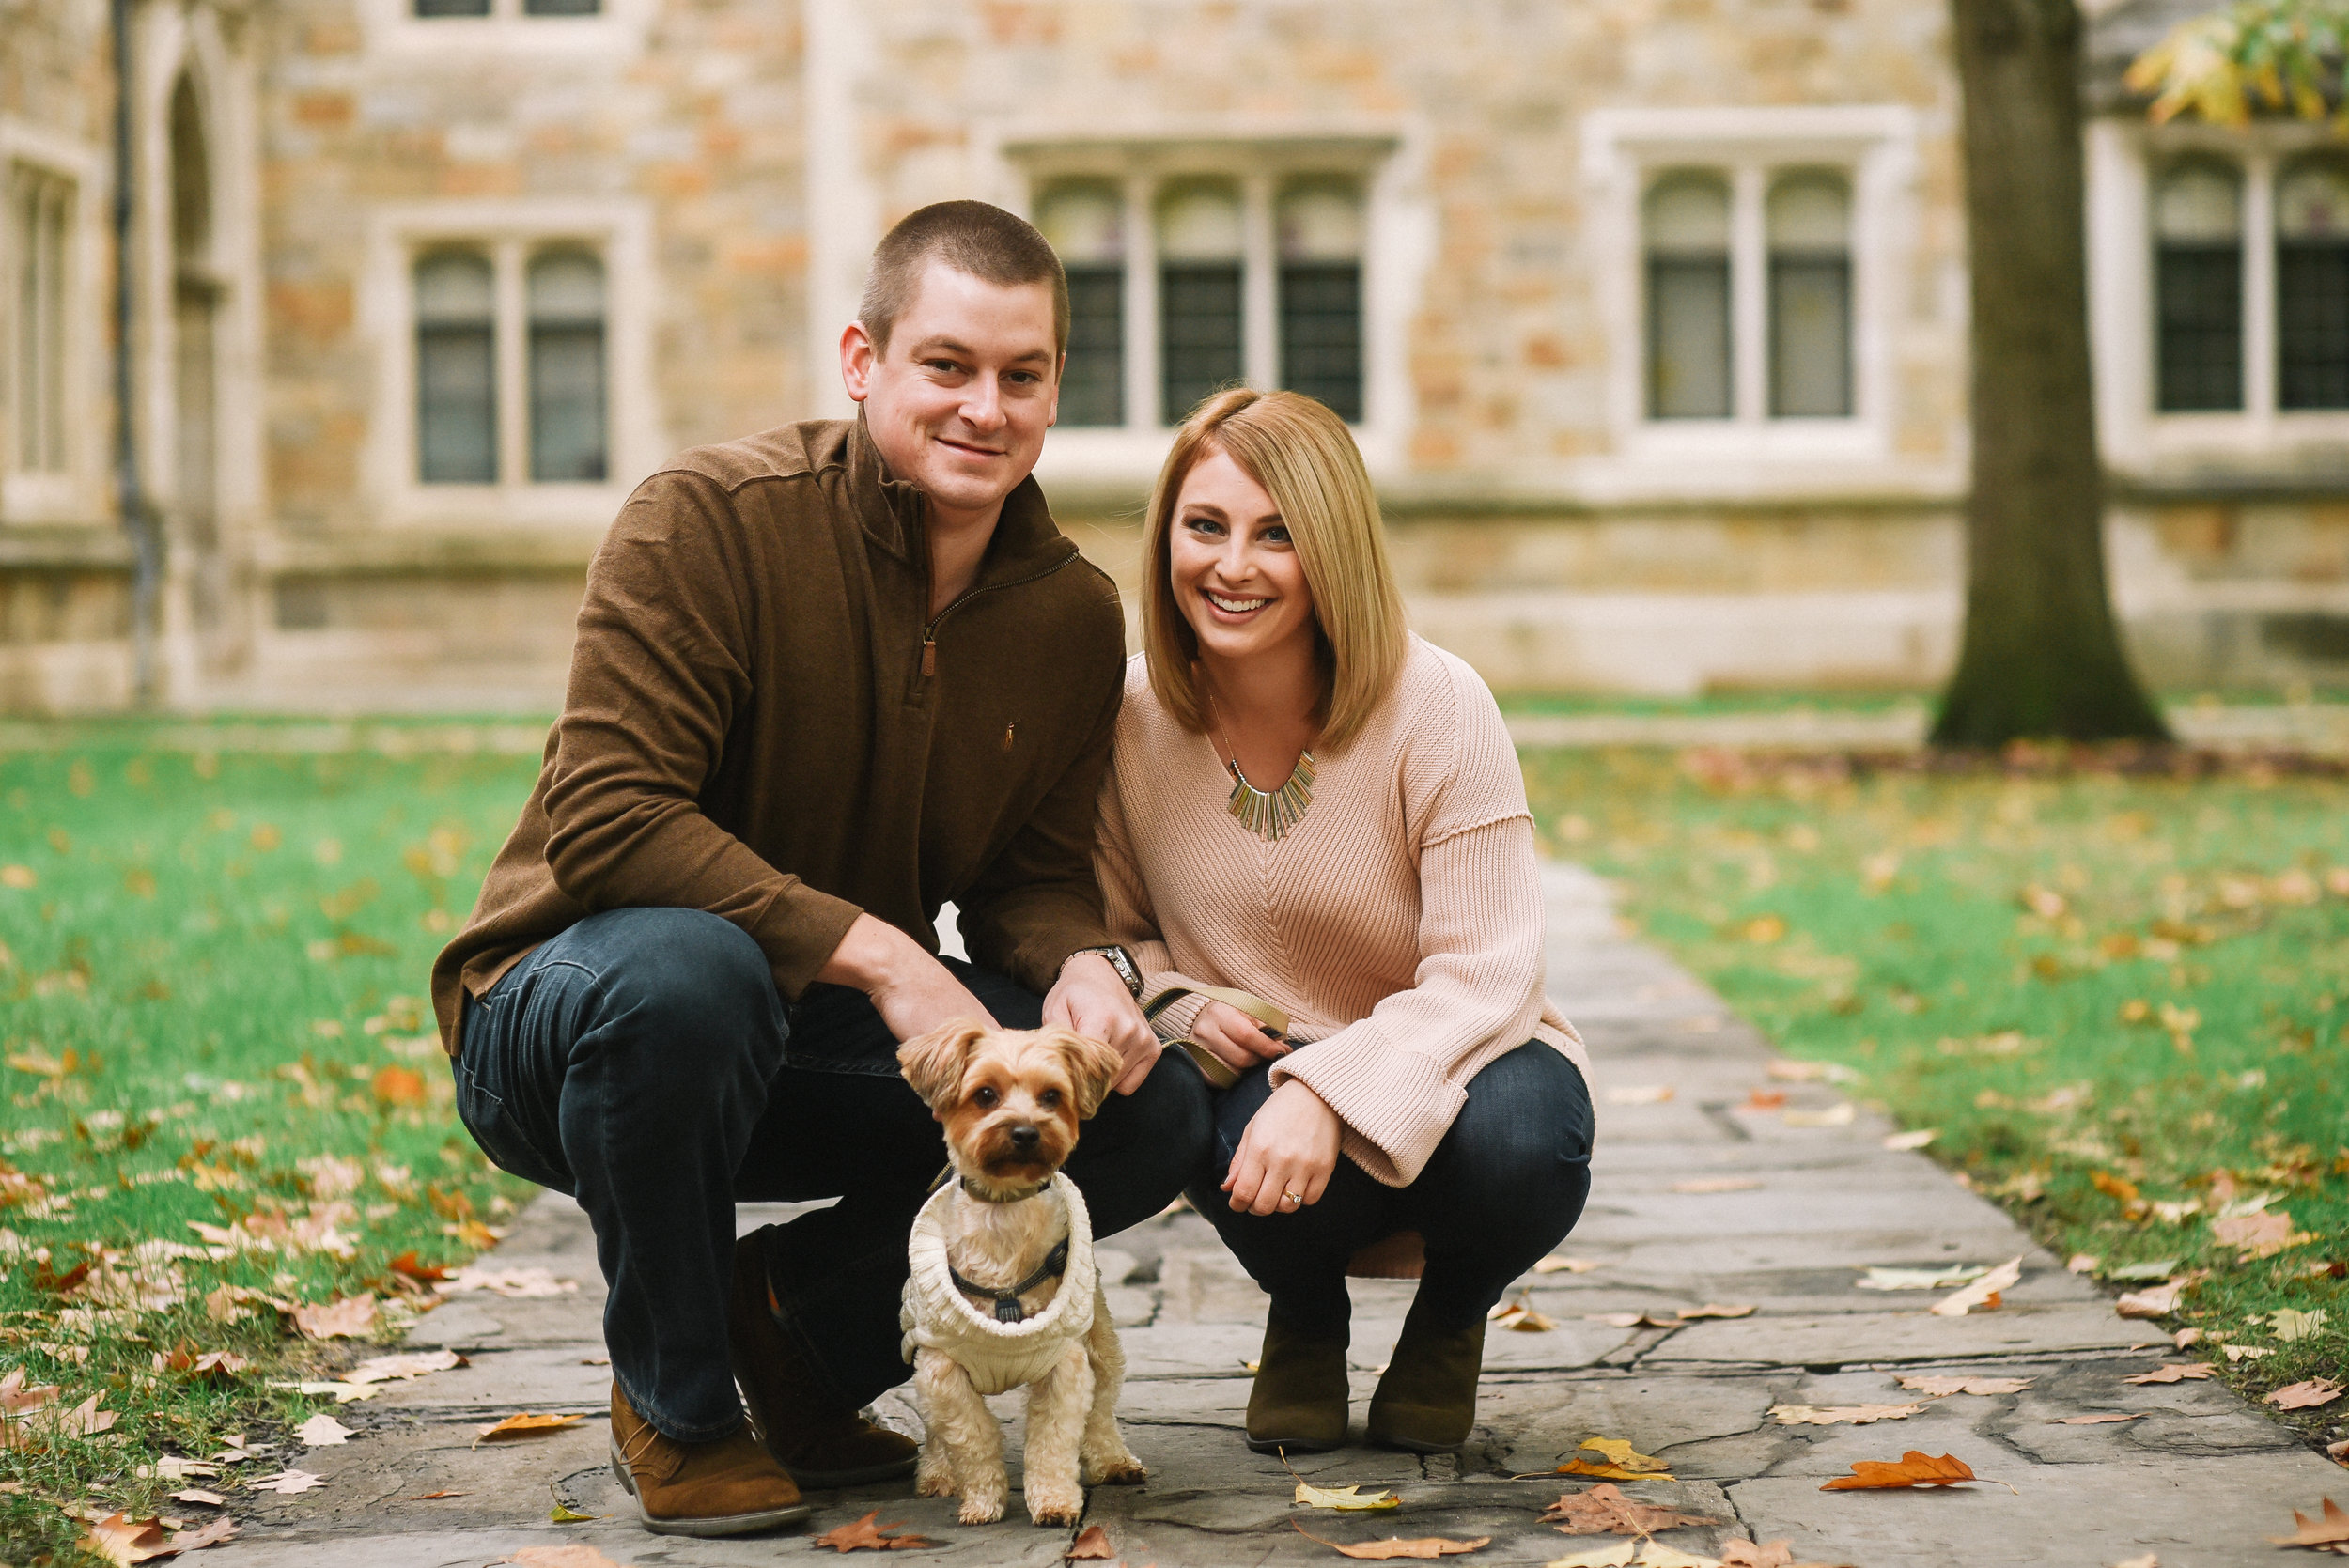 Law_Quad_Ann_Arbor_Engagement_Photos-1.jpg